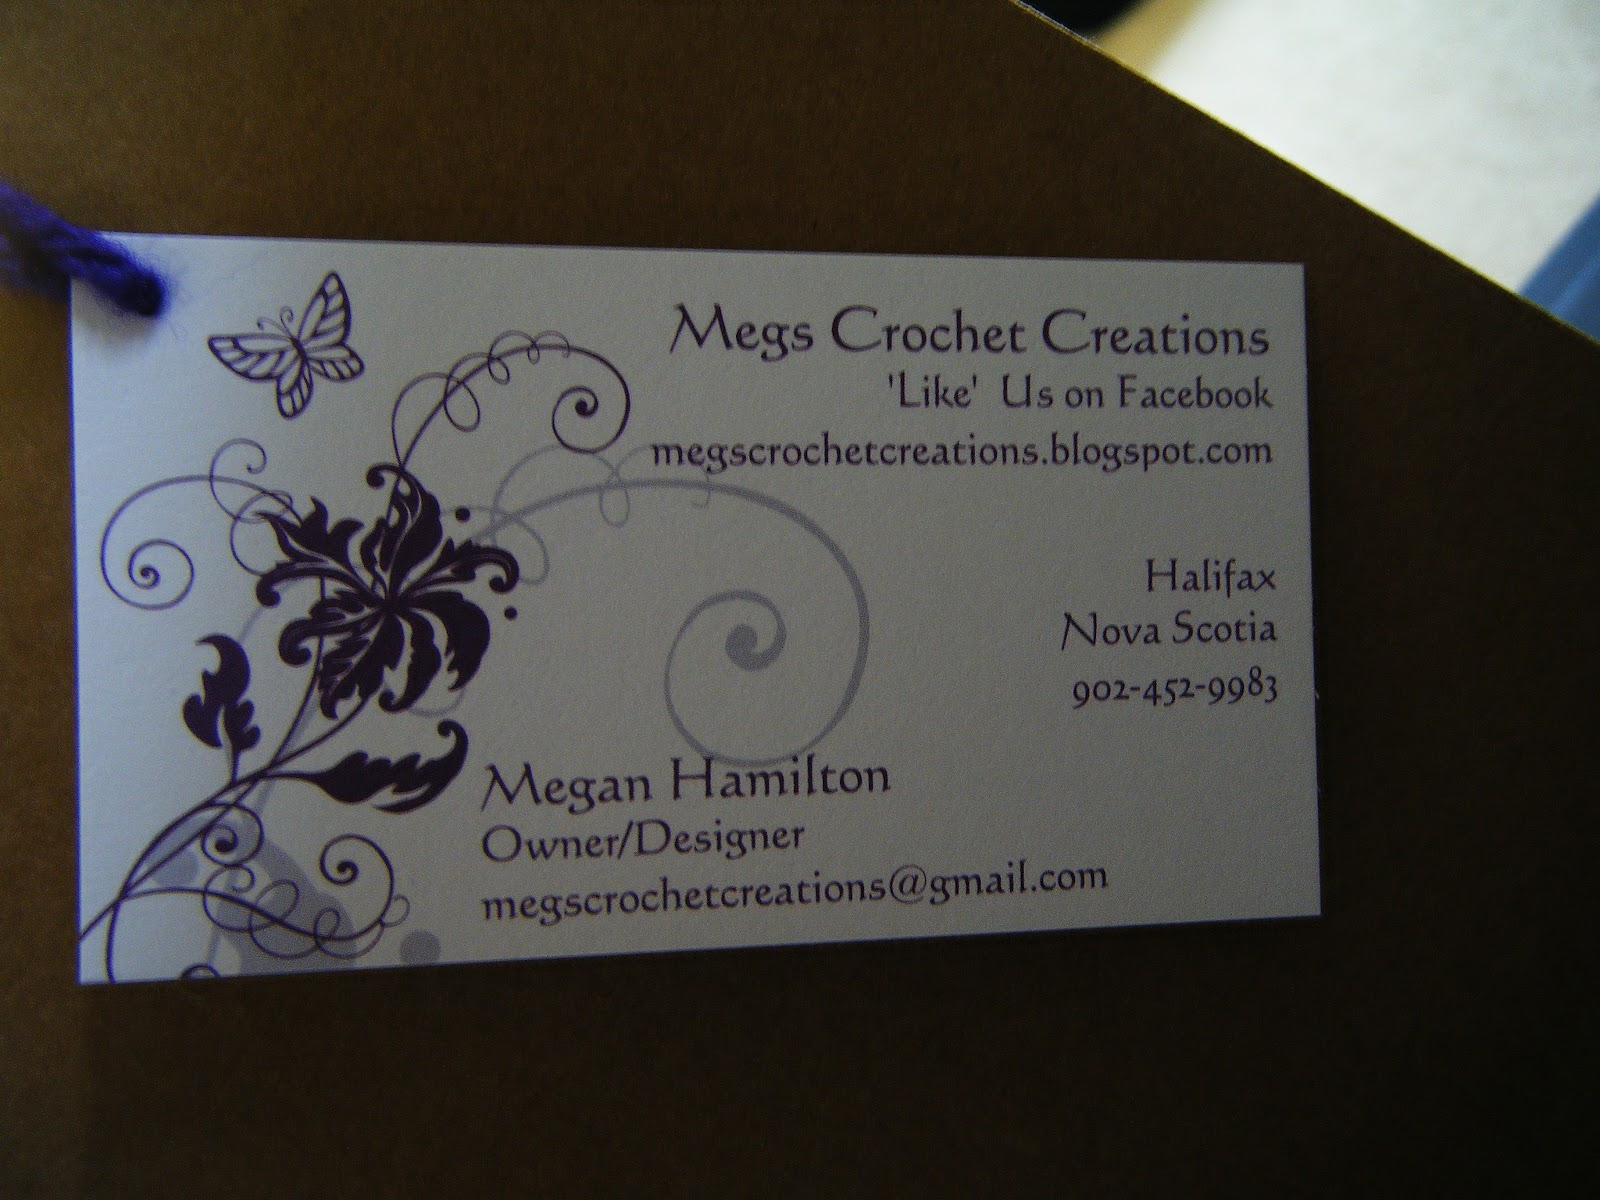 Crocheting Business : My new business cards.?